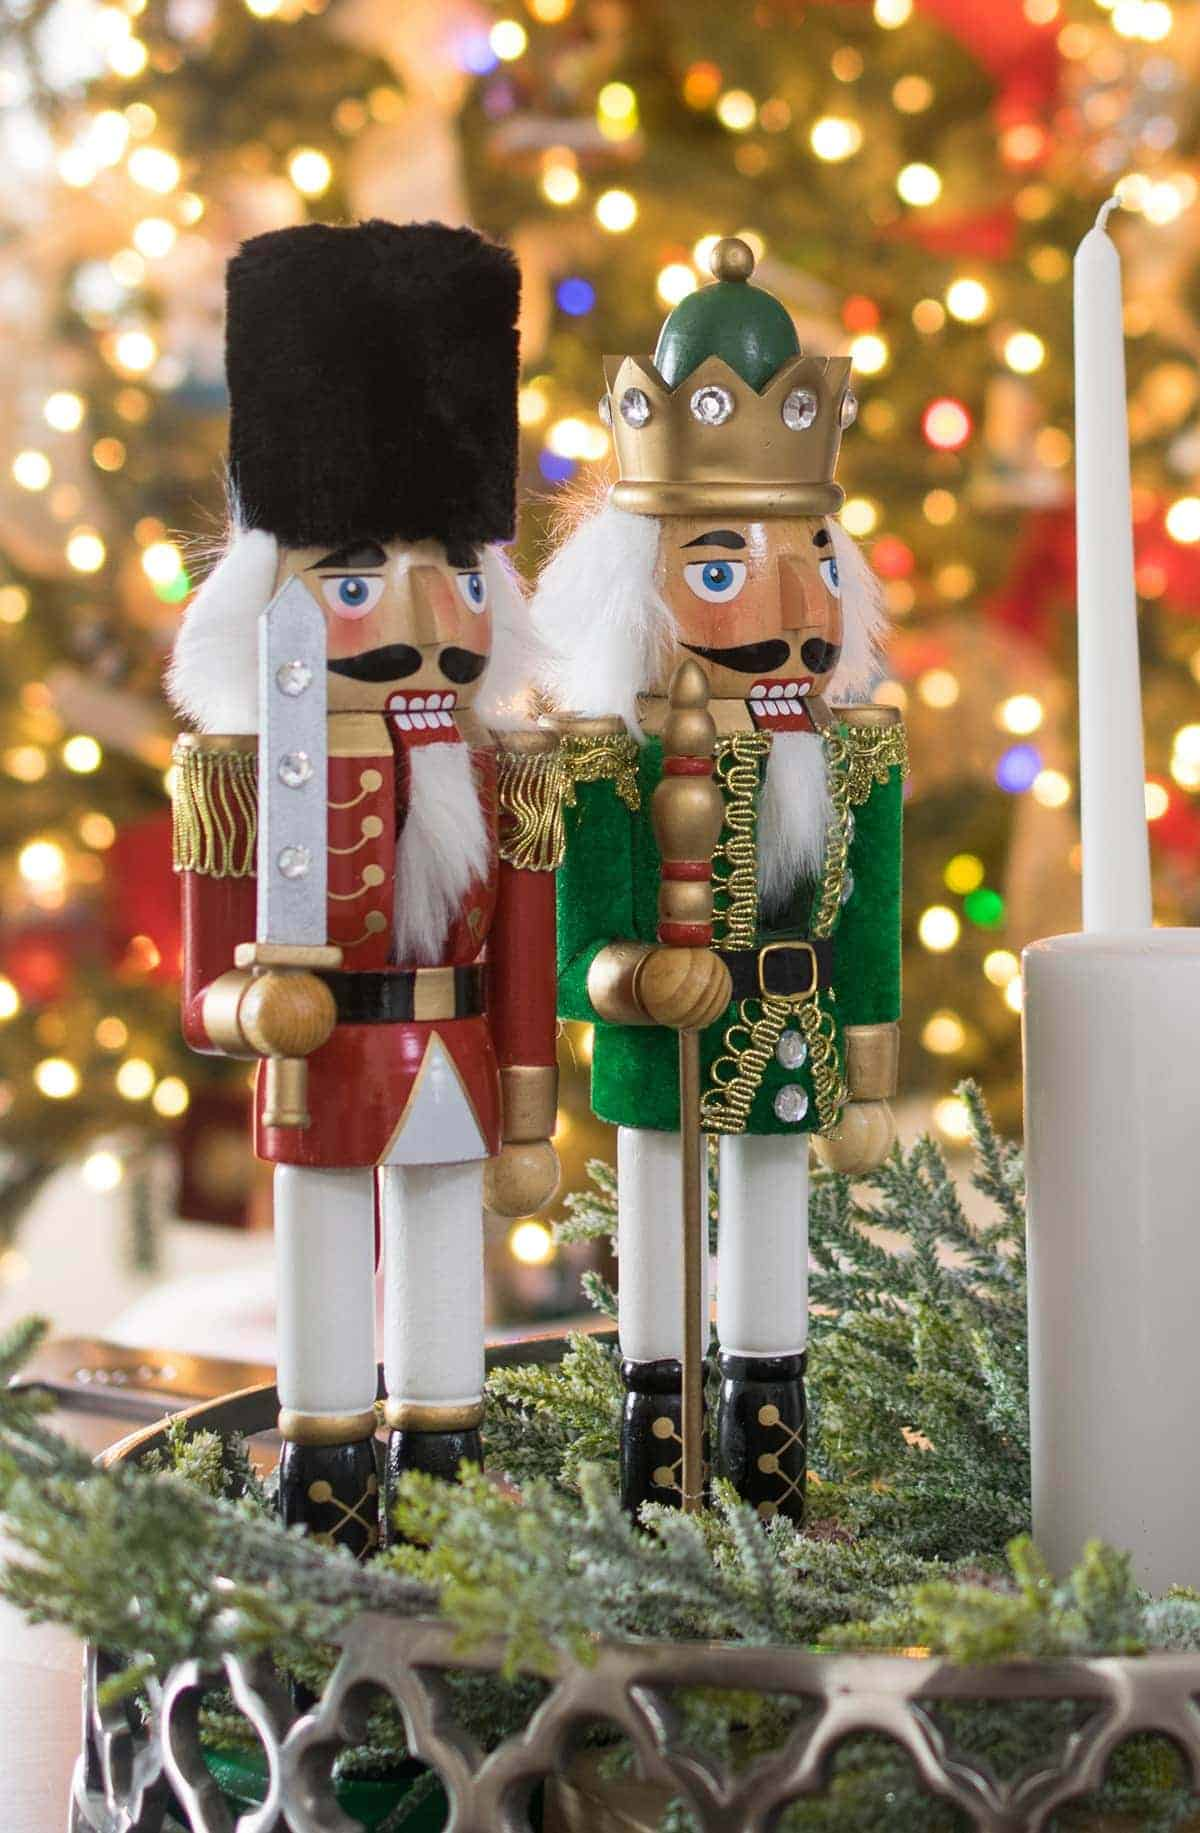 Nutcracker and candle sticks with greenery coffee table centerpiece.